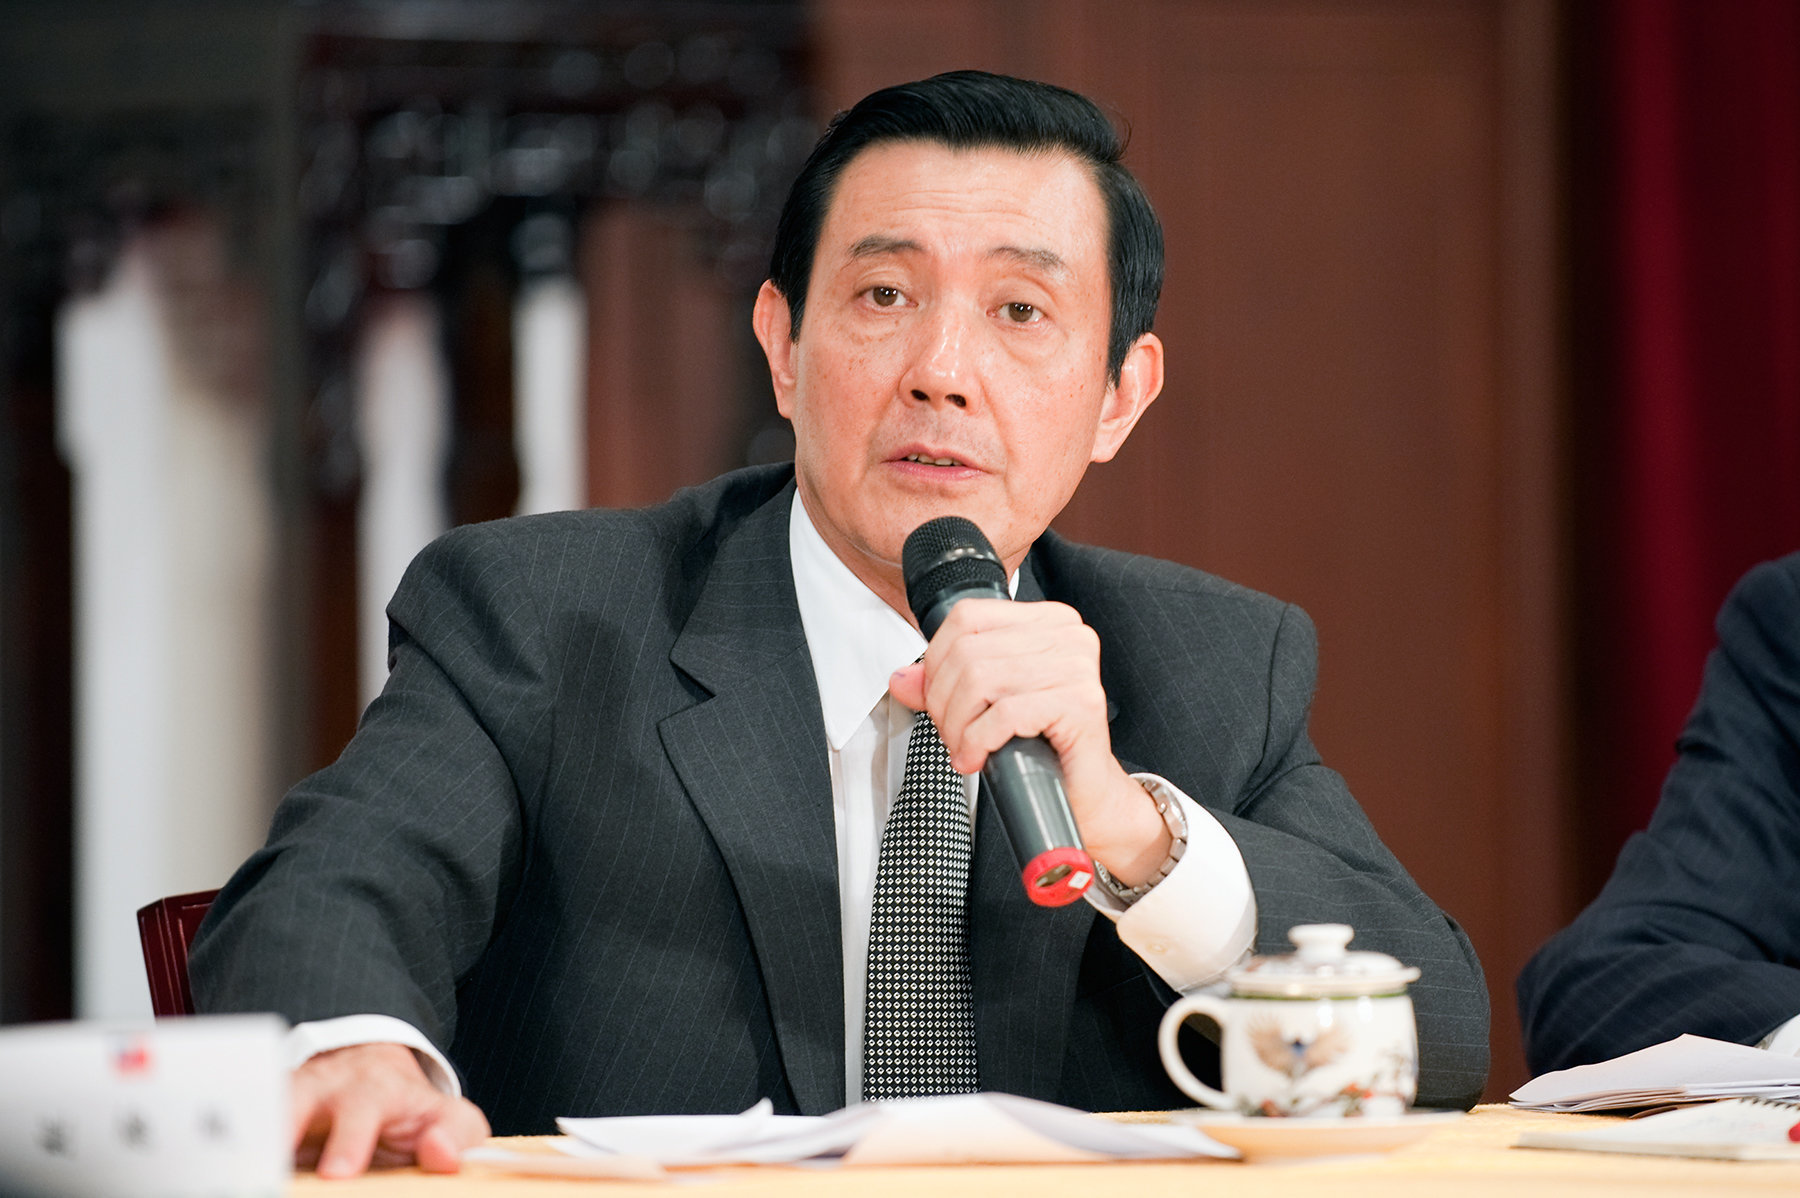 Republic Of China (Taiwan) ex-President Ma Ying-jeou speaks in a press briefing in Taiwan's Presidential Building, Taipei, Taiwan.